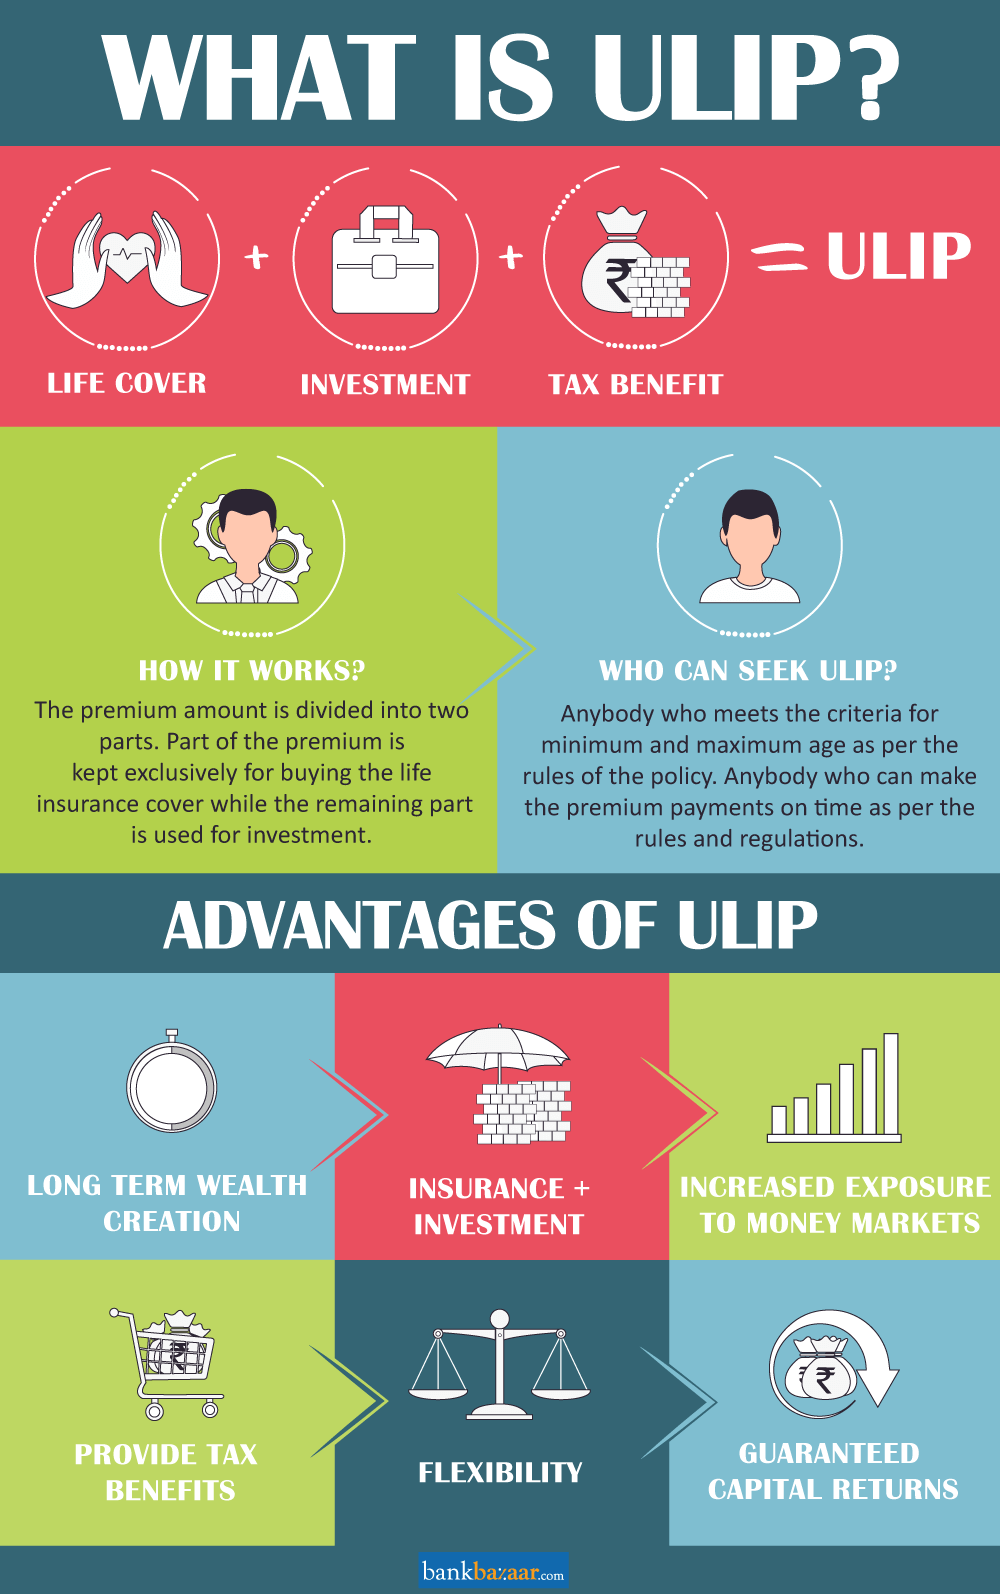 ULIP versus Traditional life insurance policy